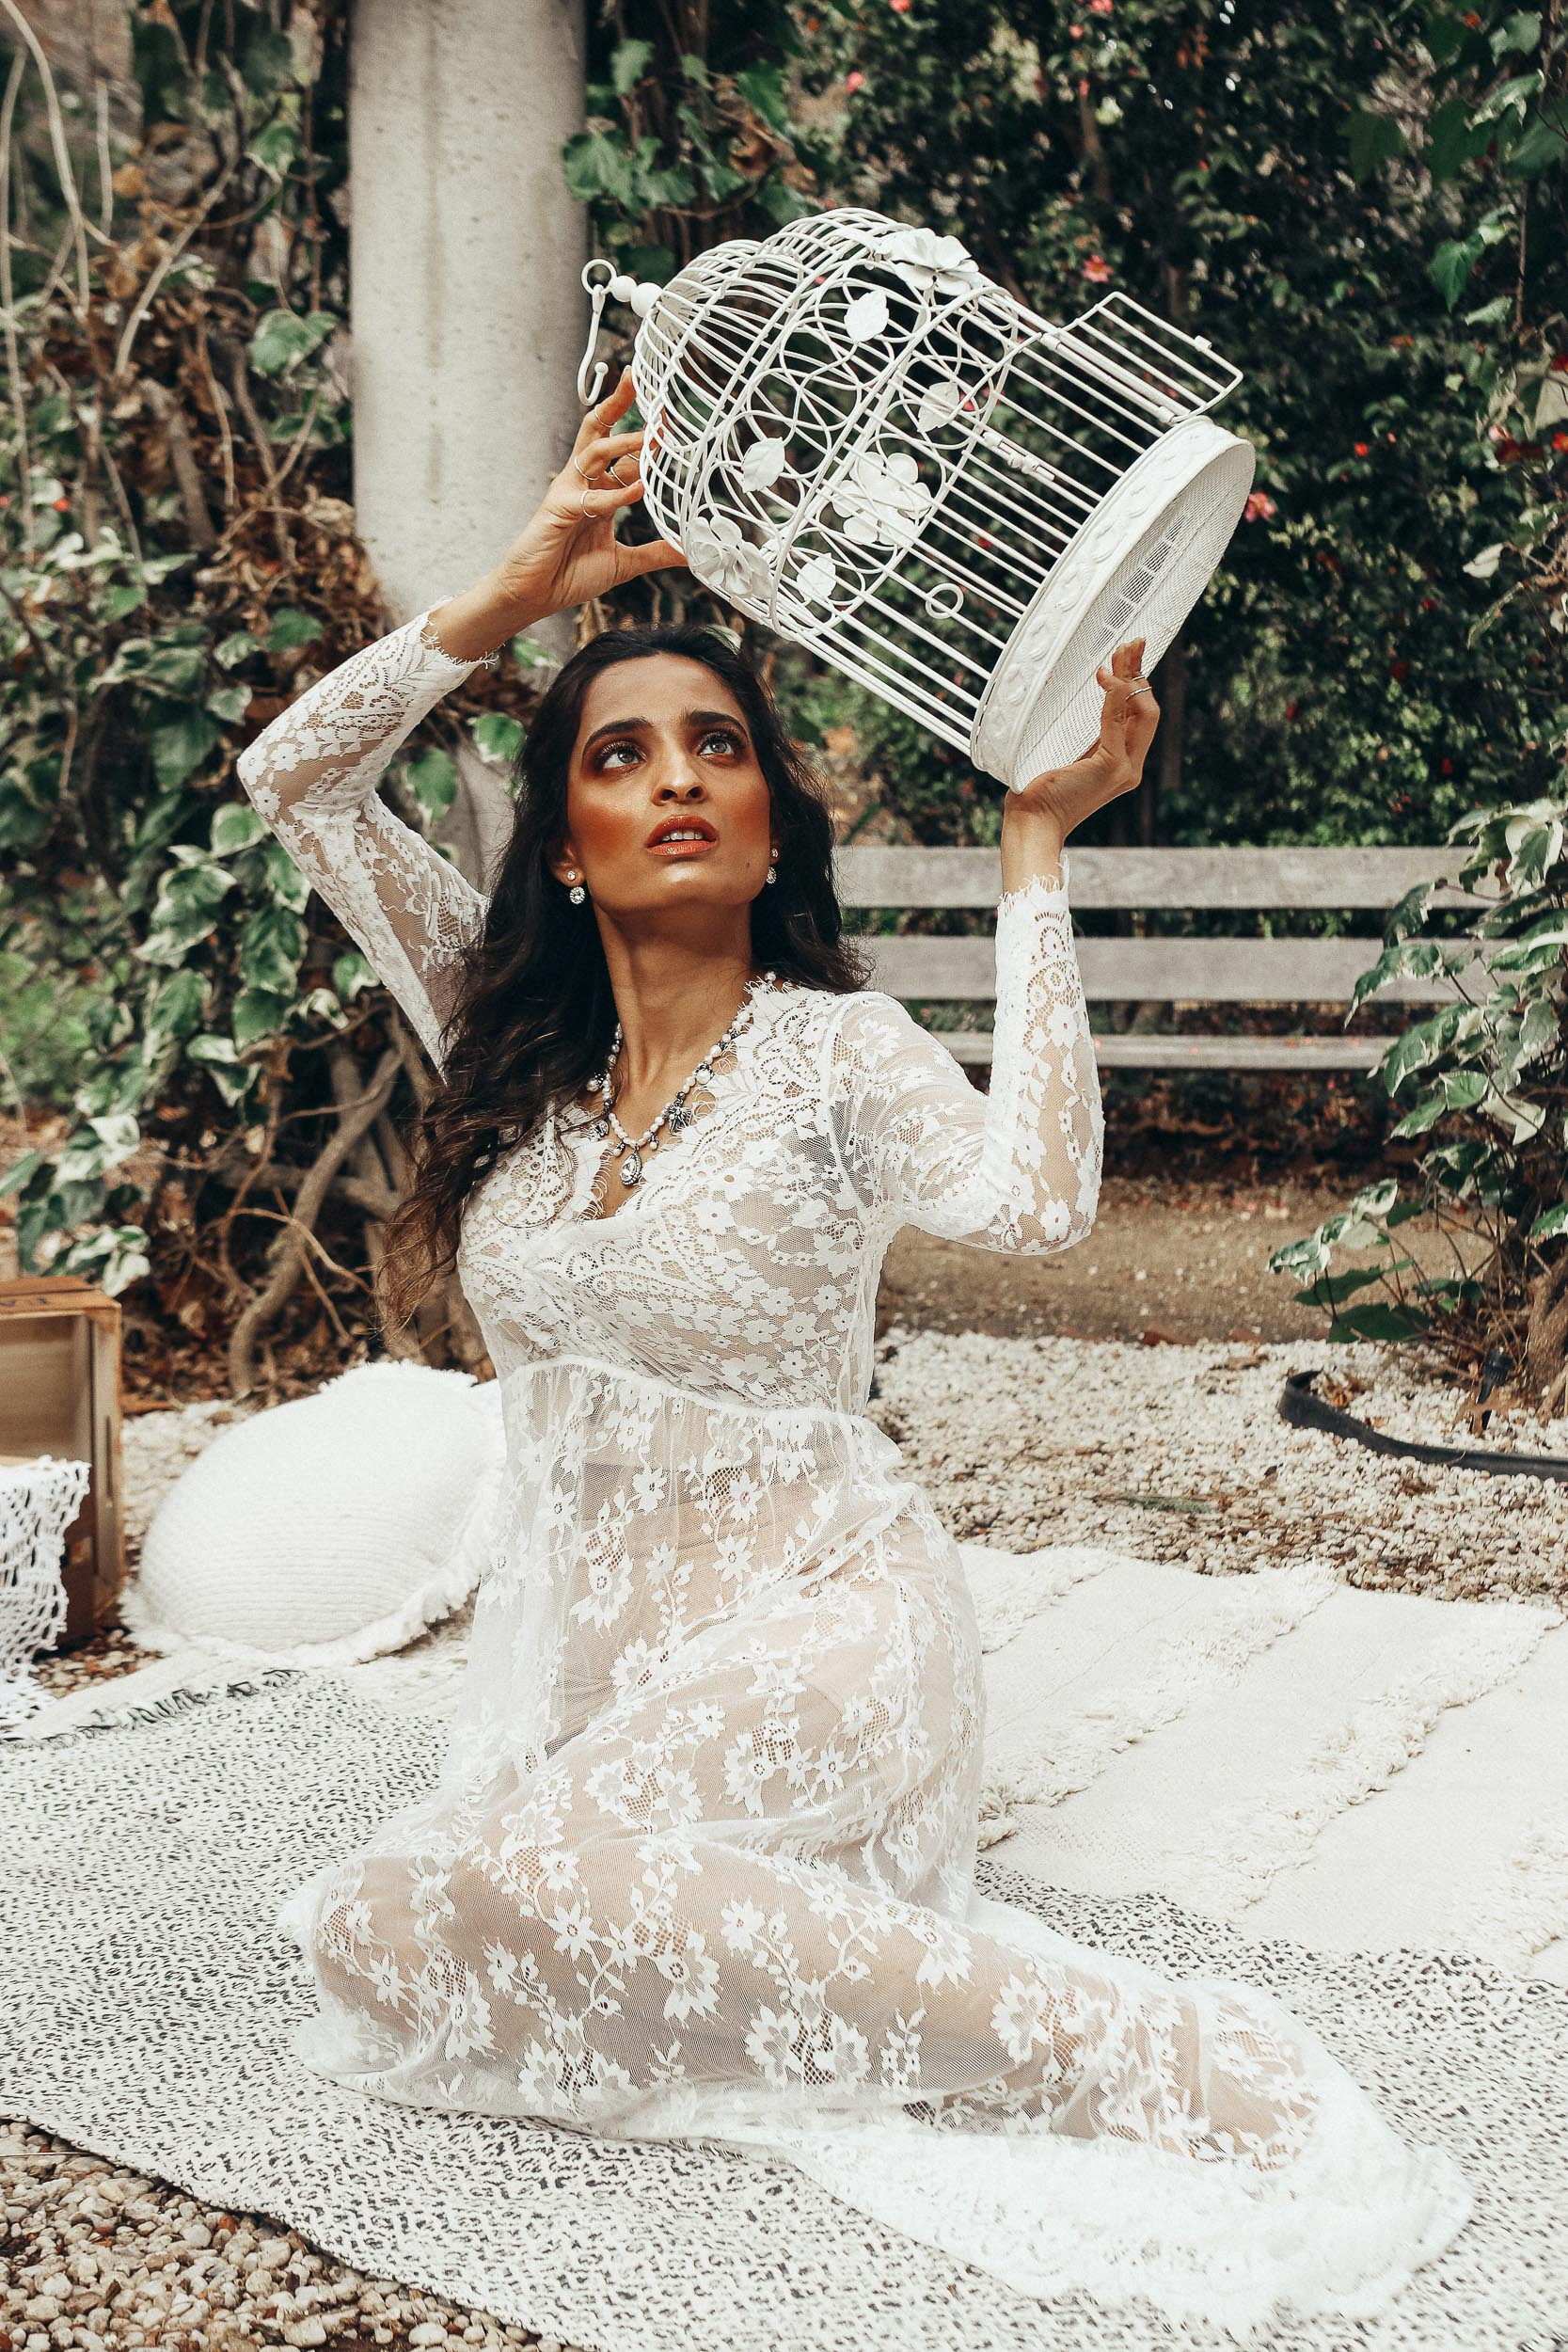 Girl sitting on a mat in forest wearing white lace gown and holding a white bird cage prop, moody shot-to discuss PMS and mental health